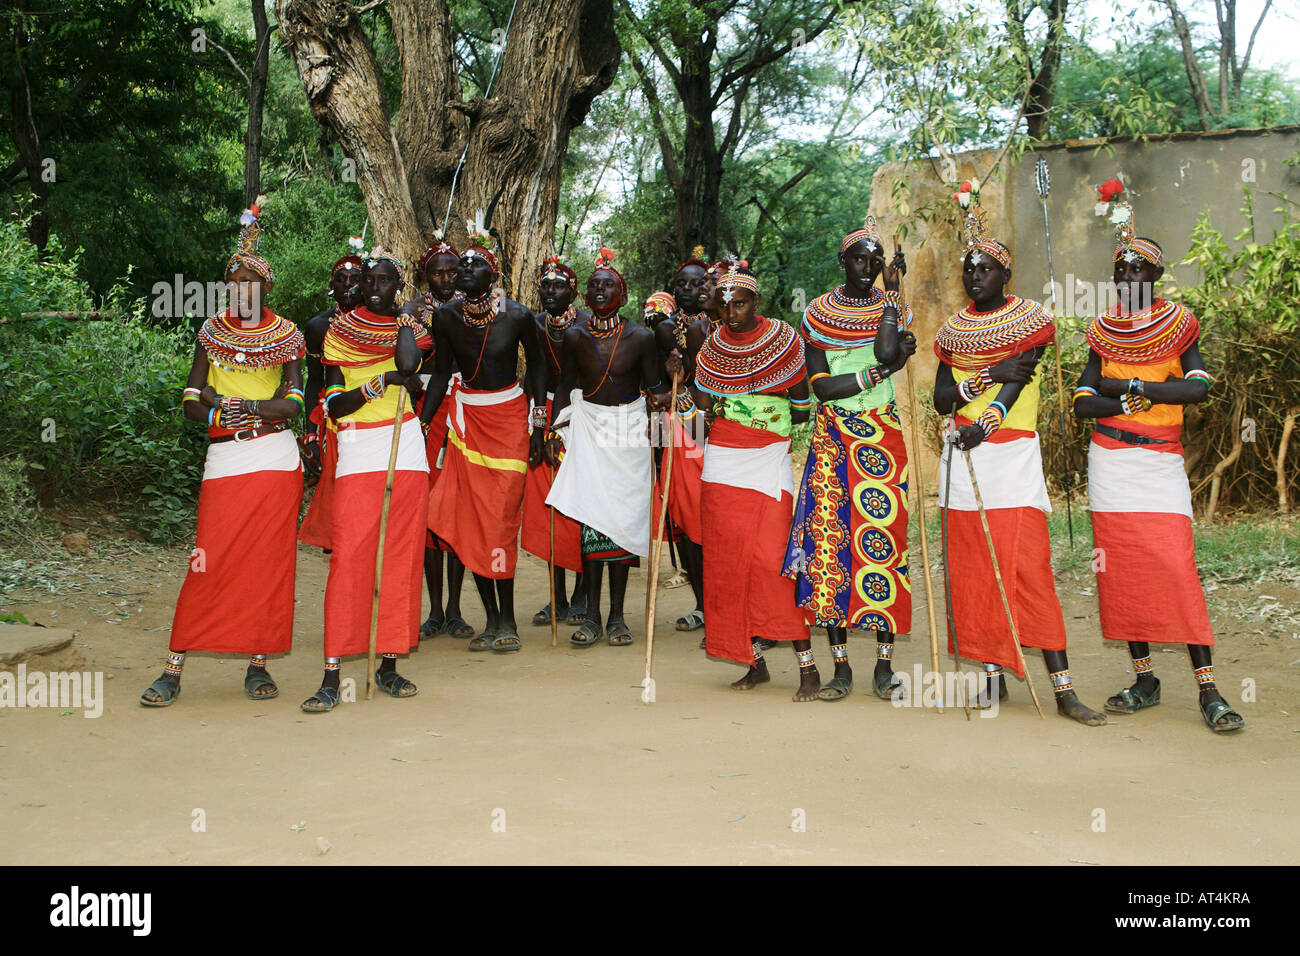 Kenyan women clothing